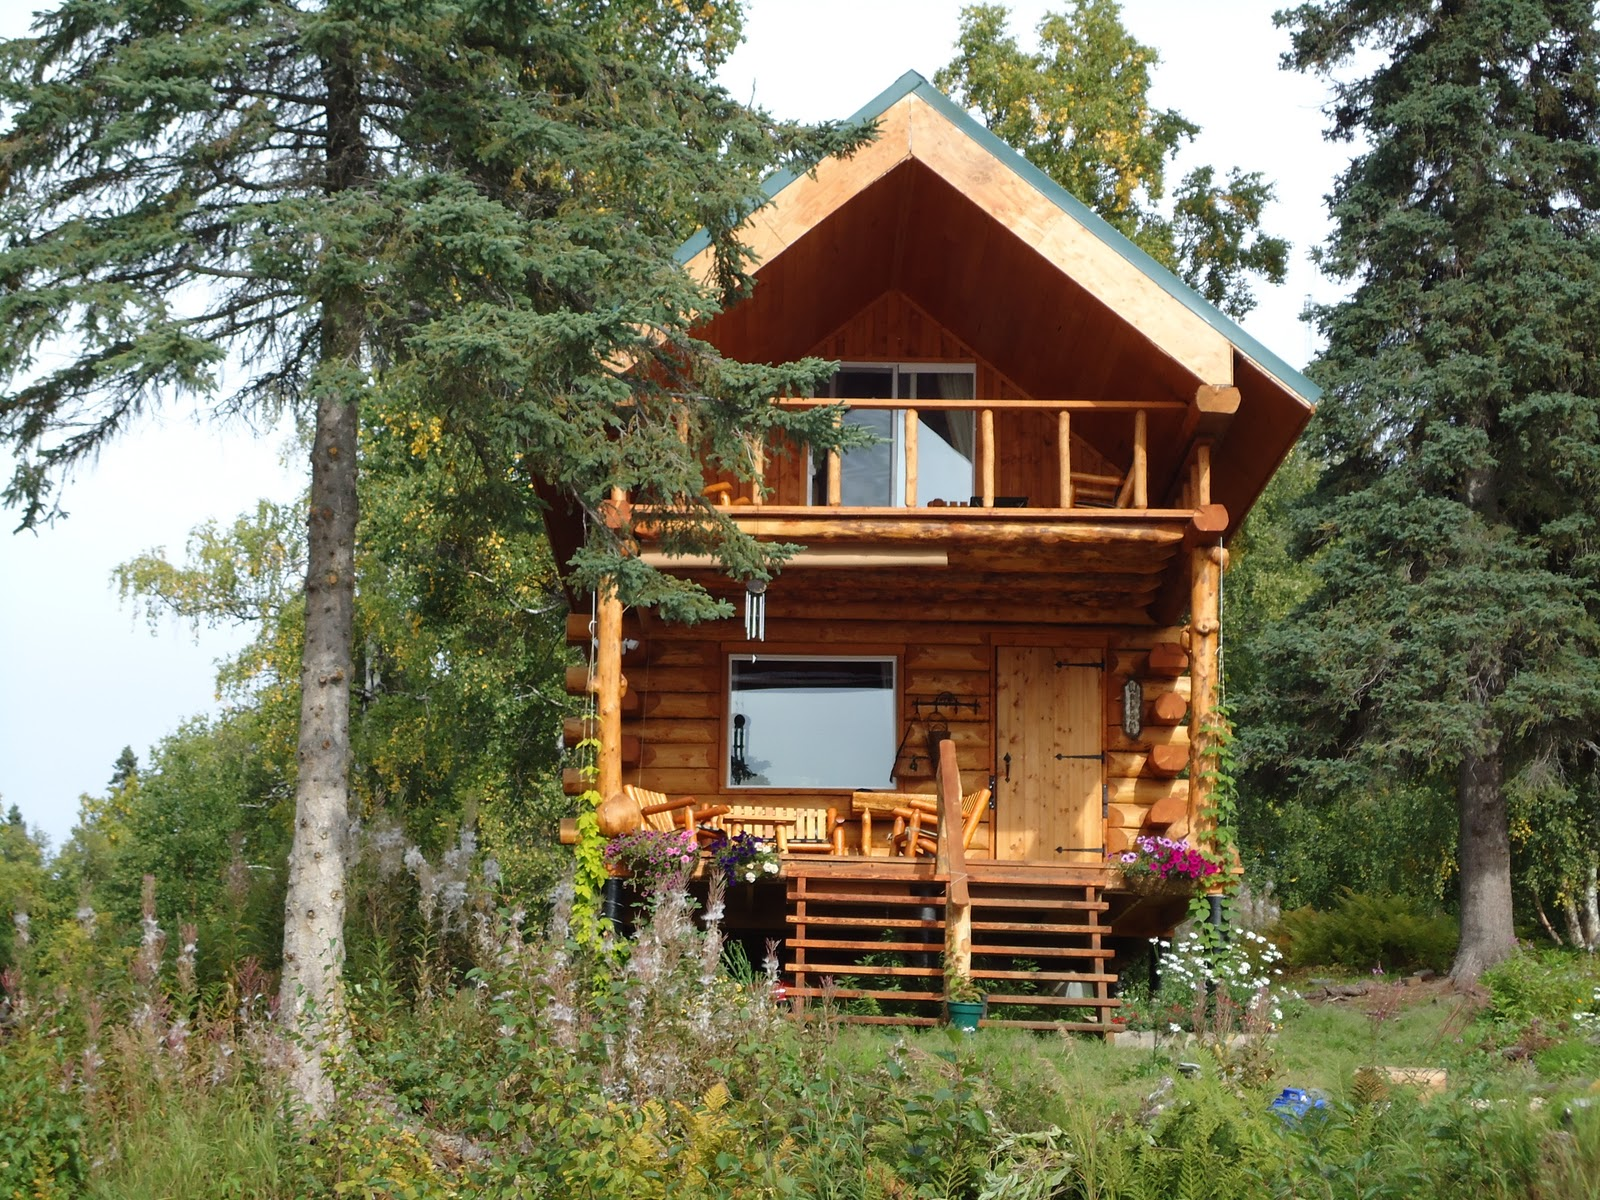 30 magical wood cabins to inspire your next off the grid vacay - Wooden vacation houses nature style ...